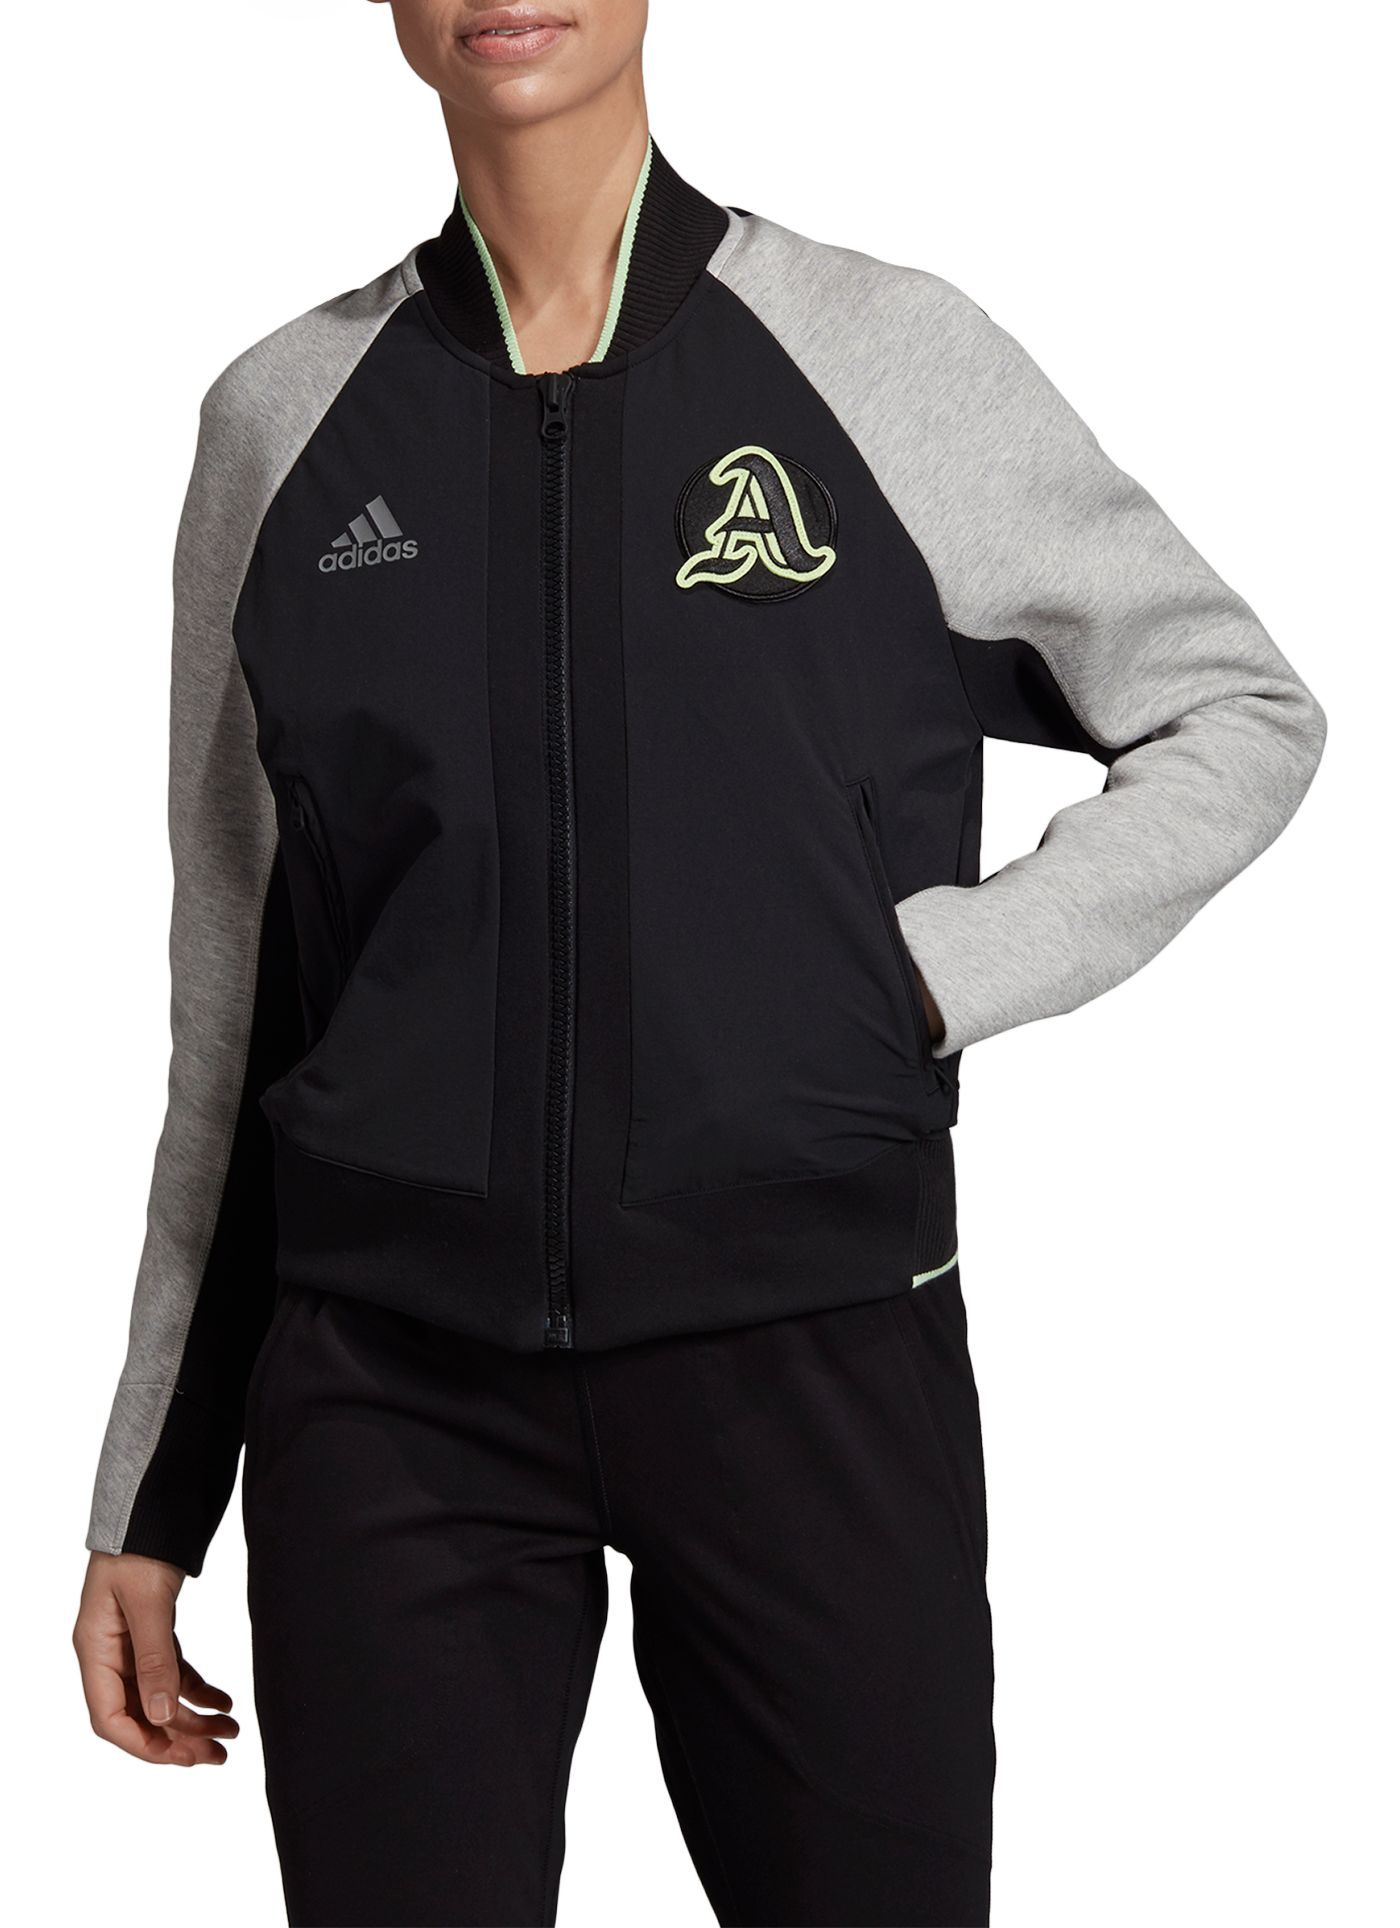 adidas Women's New York Varsity Tennis Jacket